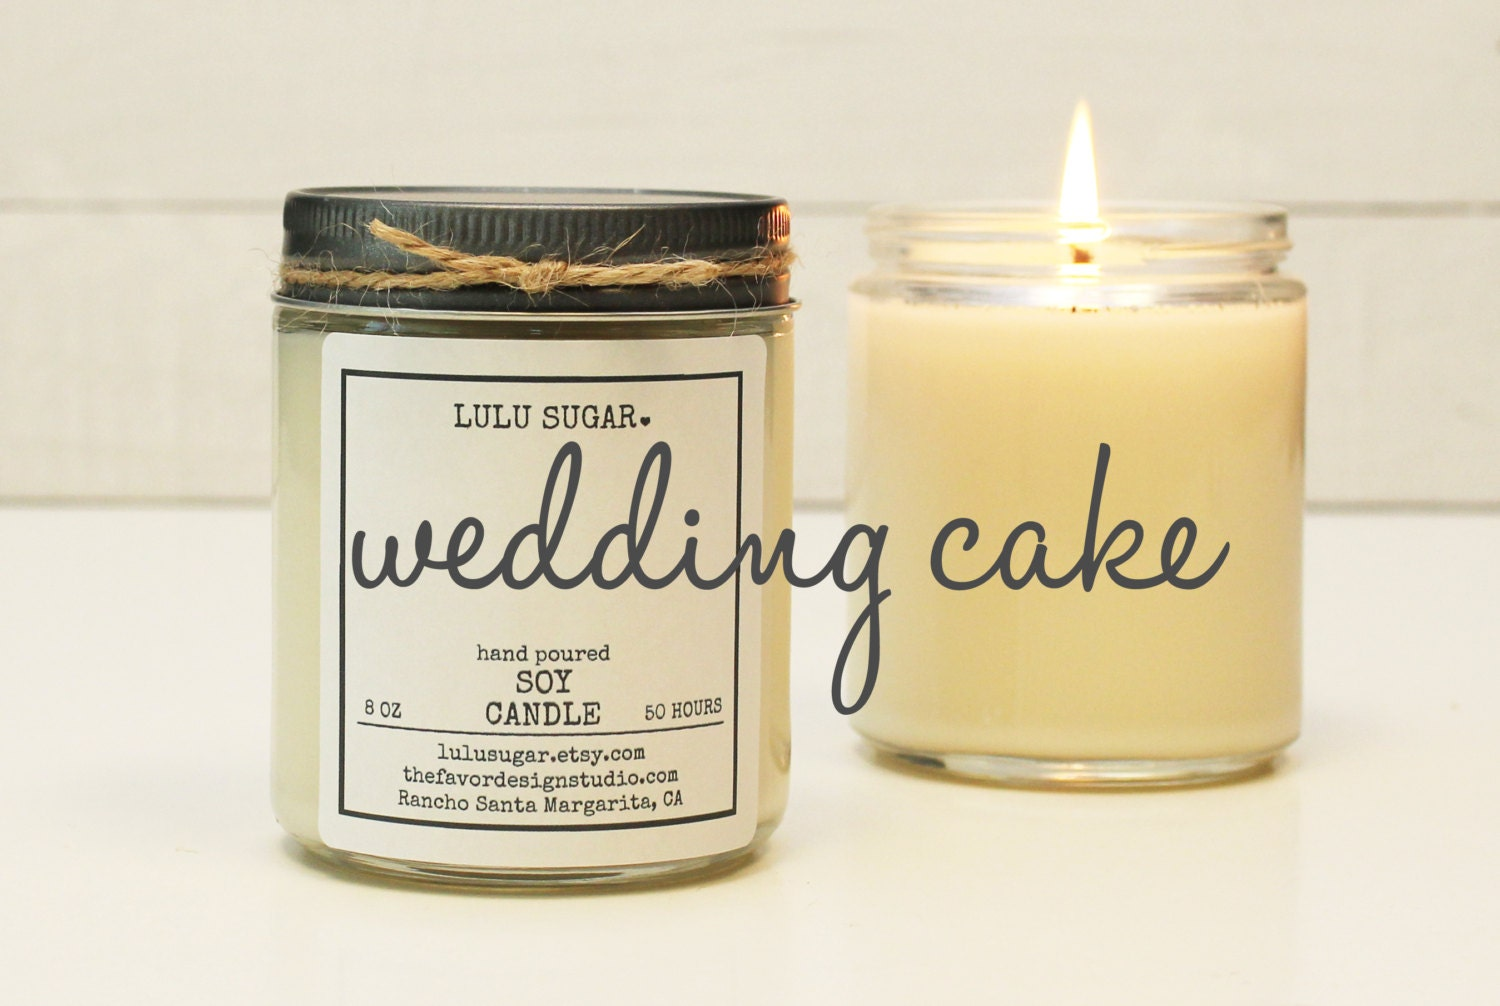 wedding cake scented candle wedding cake scented soy candle 8 oz jar soy candle gift 24031